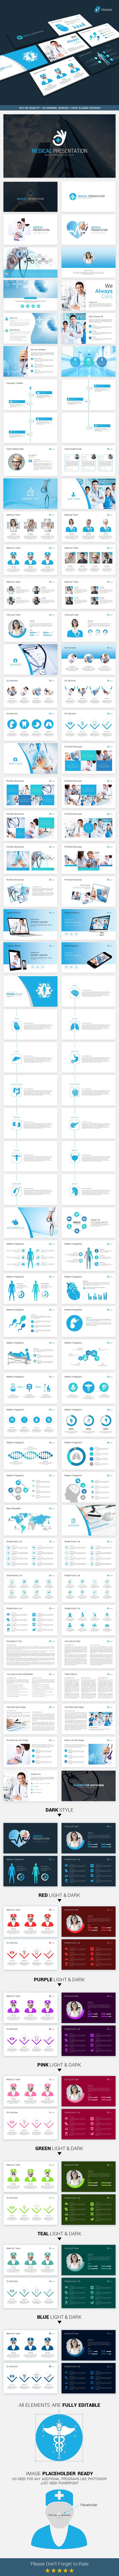 Medical PowerPoint Template #design #slides Download: http://graphicriver.net/item/medical-powerpoint-template/13624967?ref=ksioks